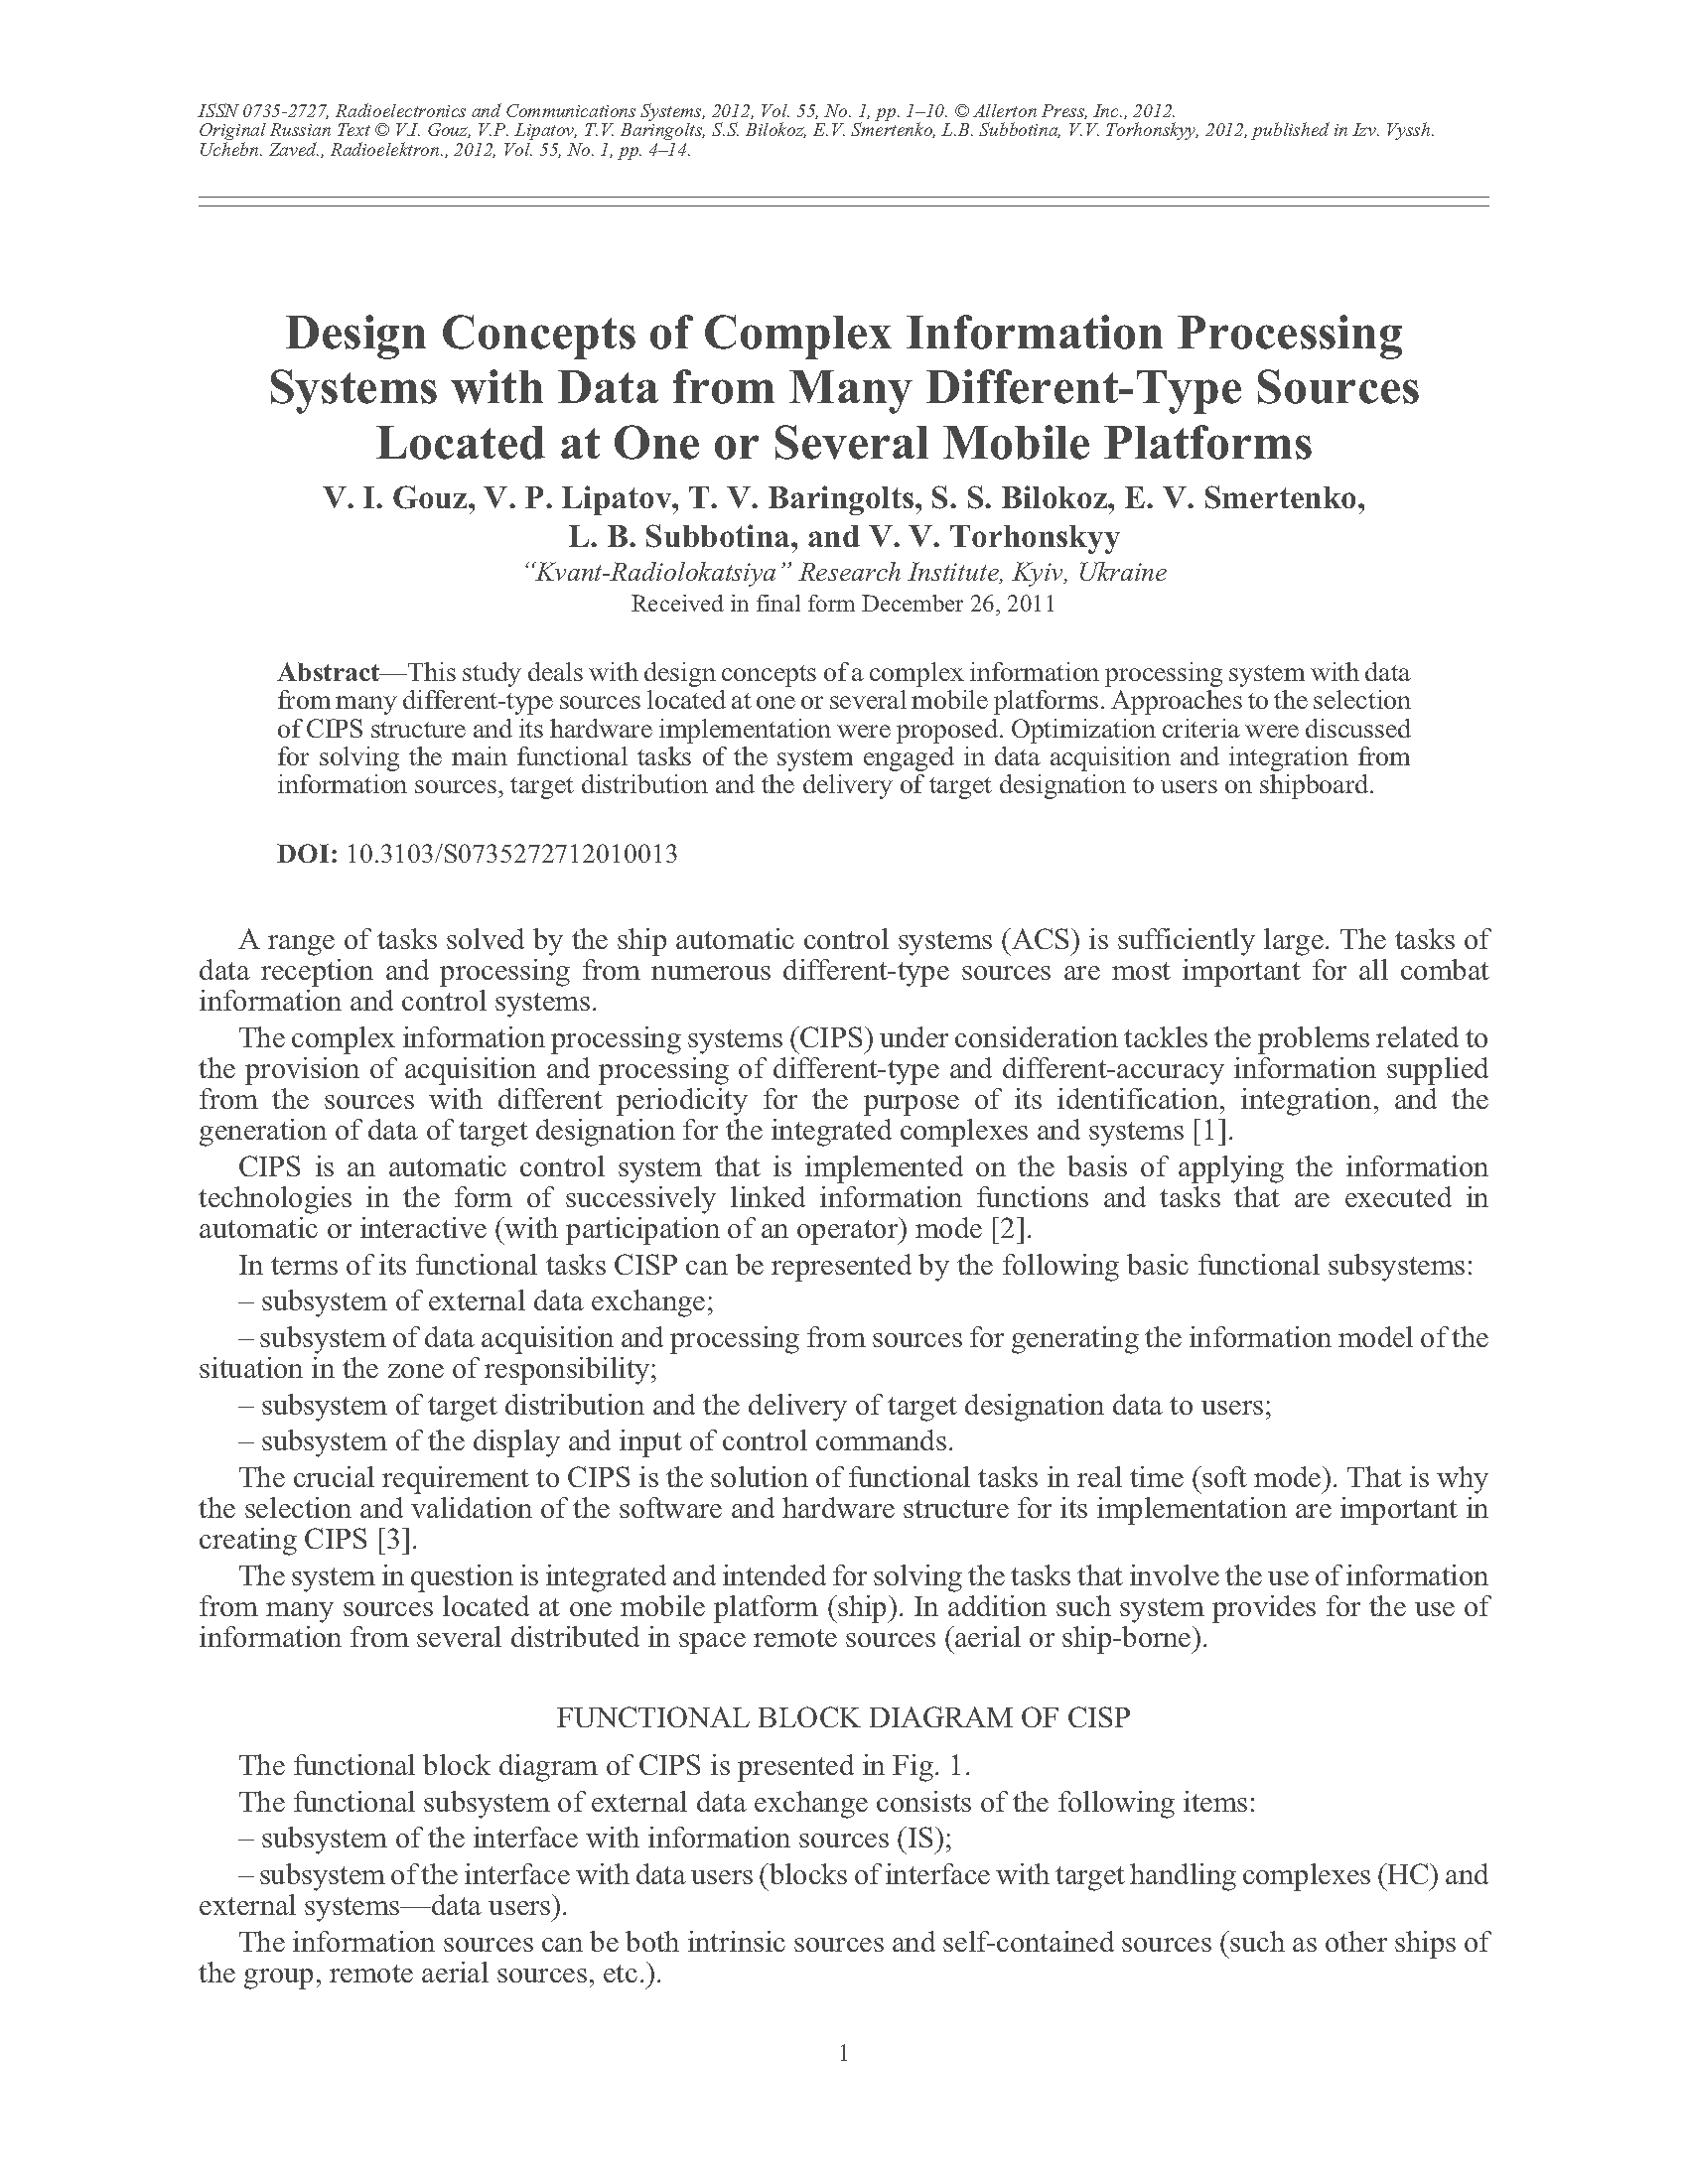 Gouz, V.I. Design concepts of complex information processing systems with data from many different-type sources located at one or several mobile platforms (2012).  doi: 10.3103/S0735272712010013.